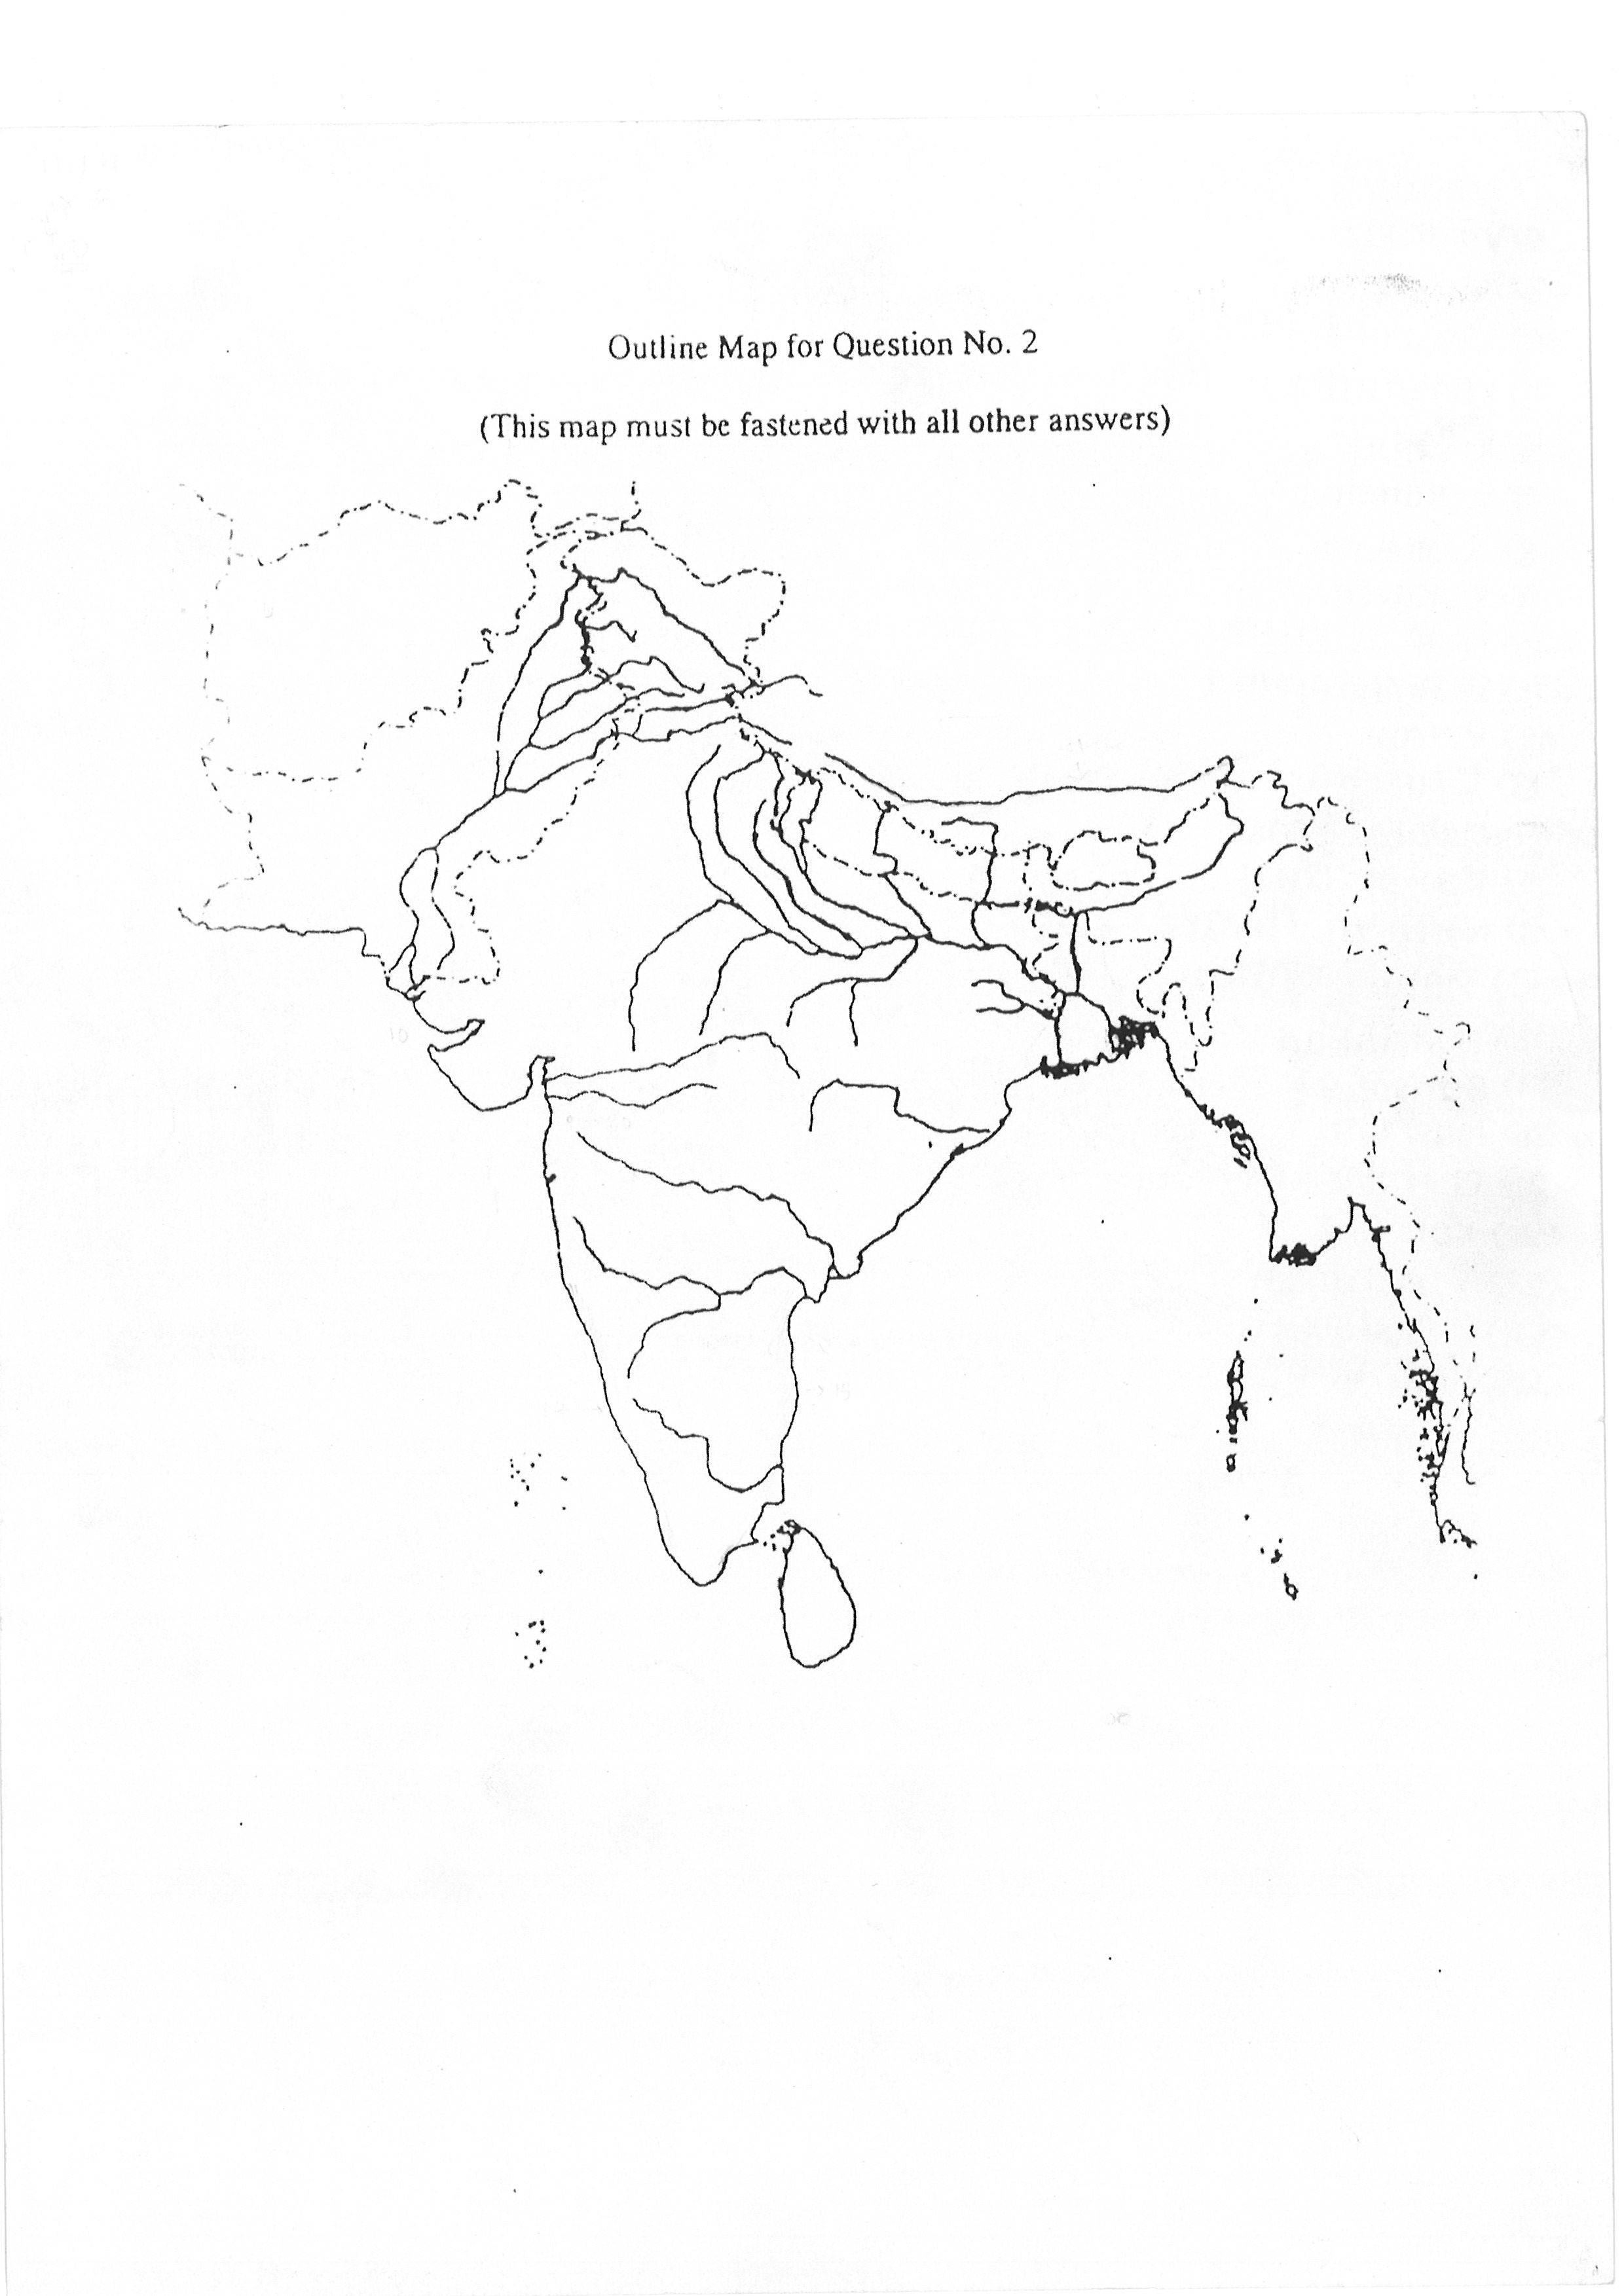 Geography Sample India Map Outline Helpline For Icse Students Class 10